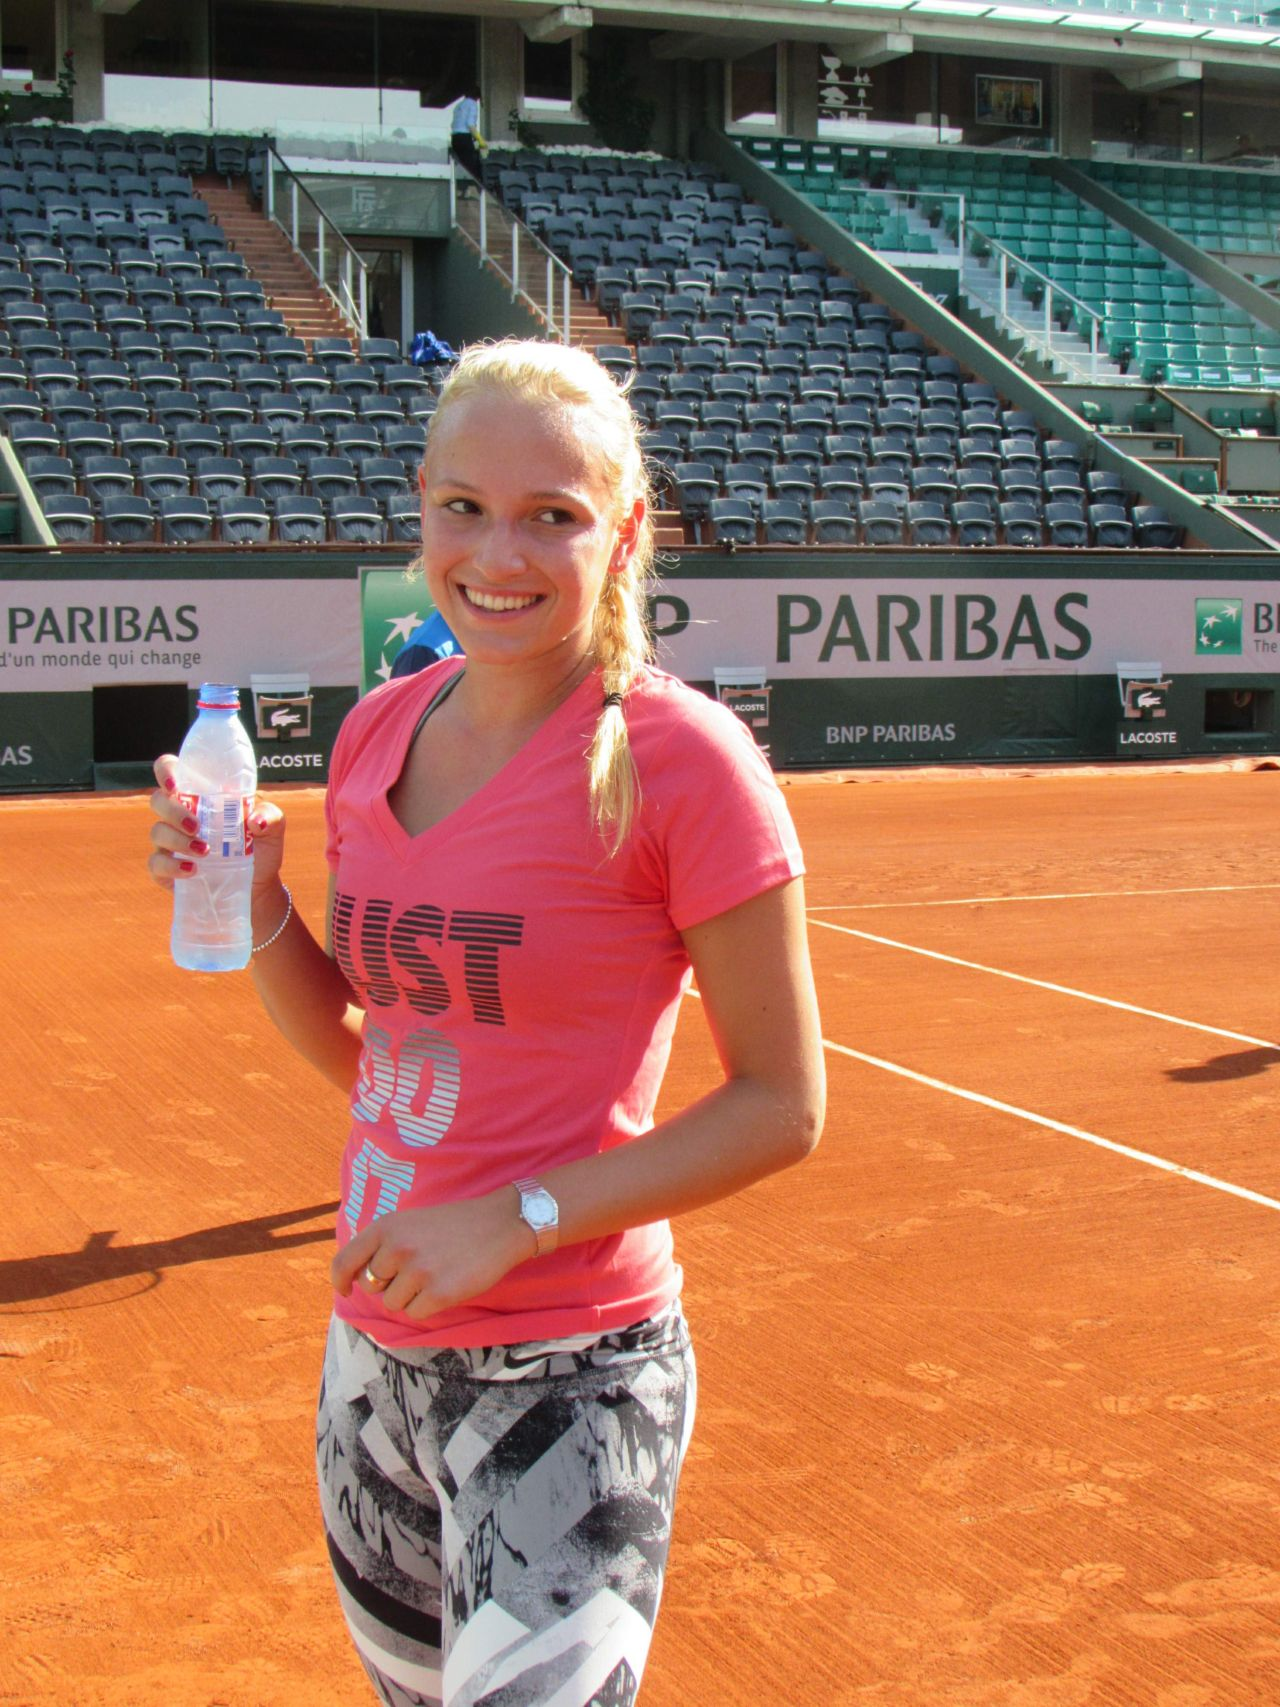 Donna Vekic Training - 2014 French Open at Roland Garros